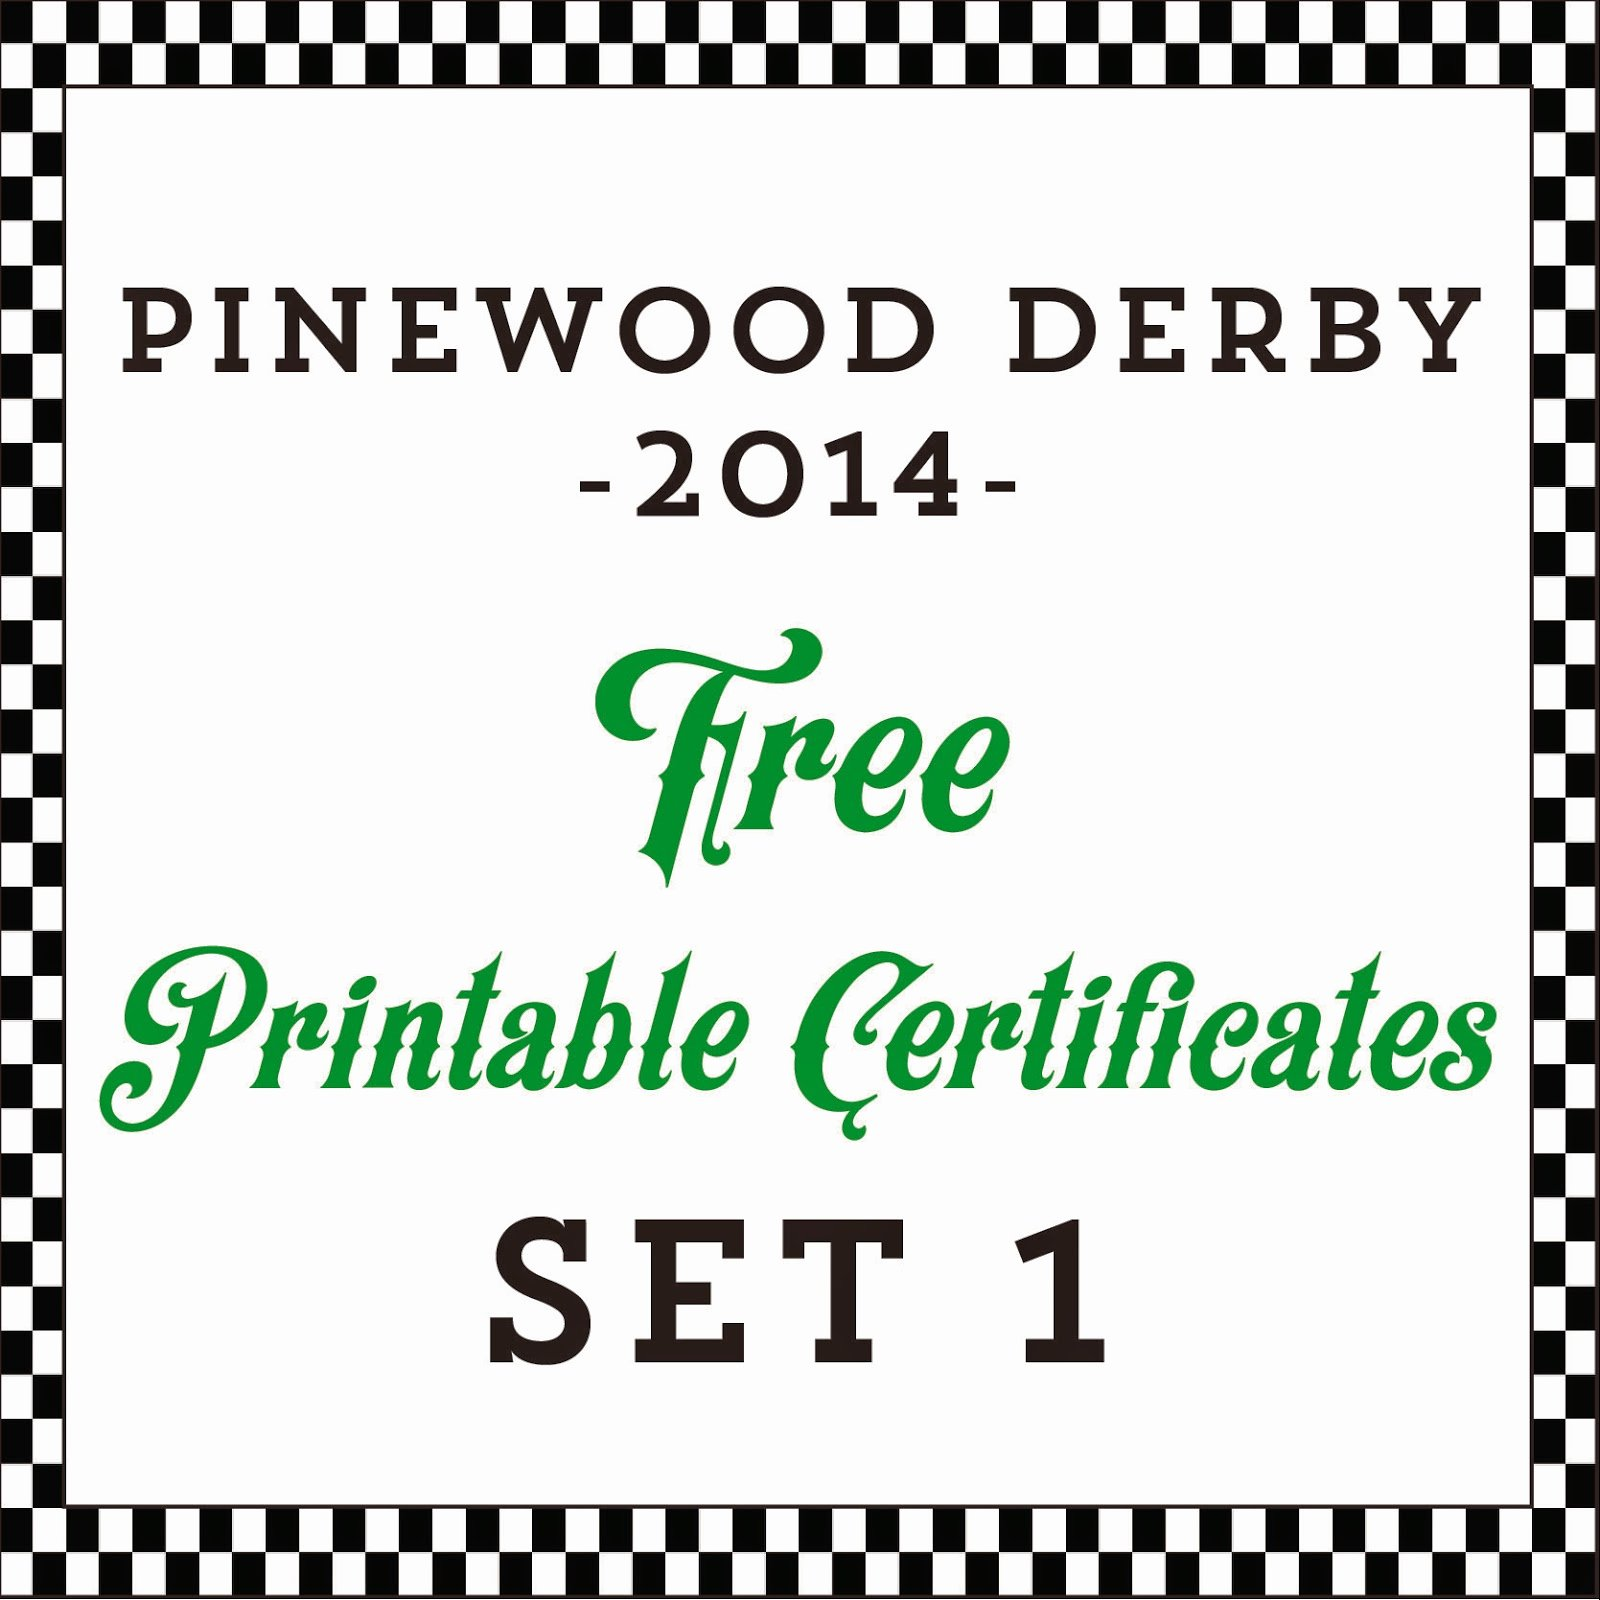 Pinewood Derby Award Certificate Template Best Of Hot Modity Home Decor Free Printable Pinewood Derby Awards